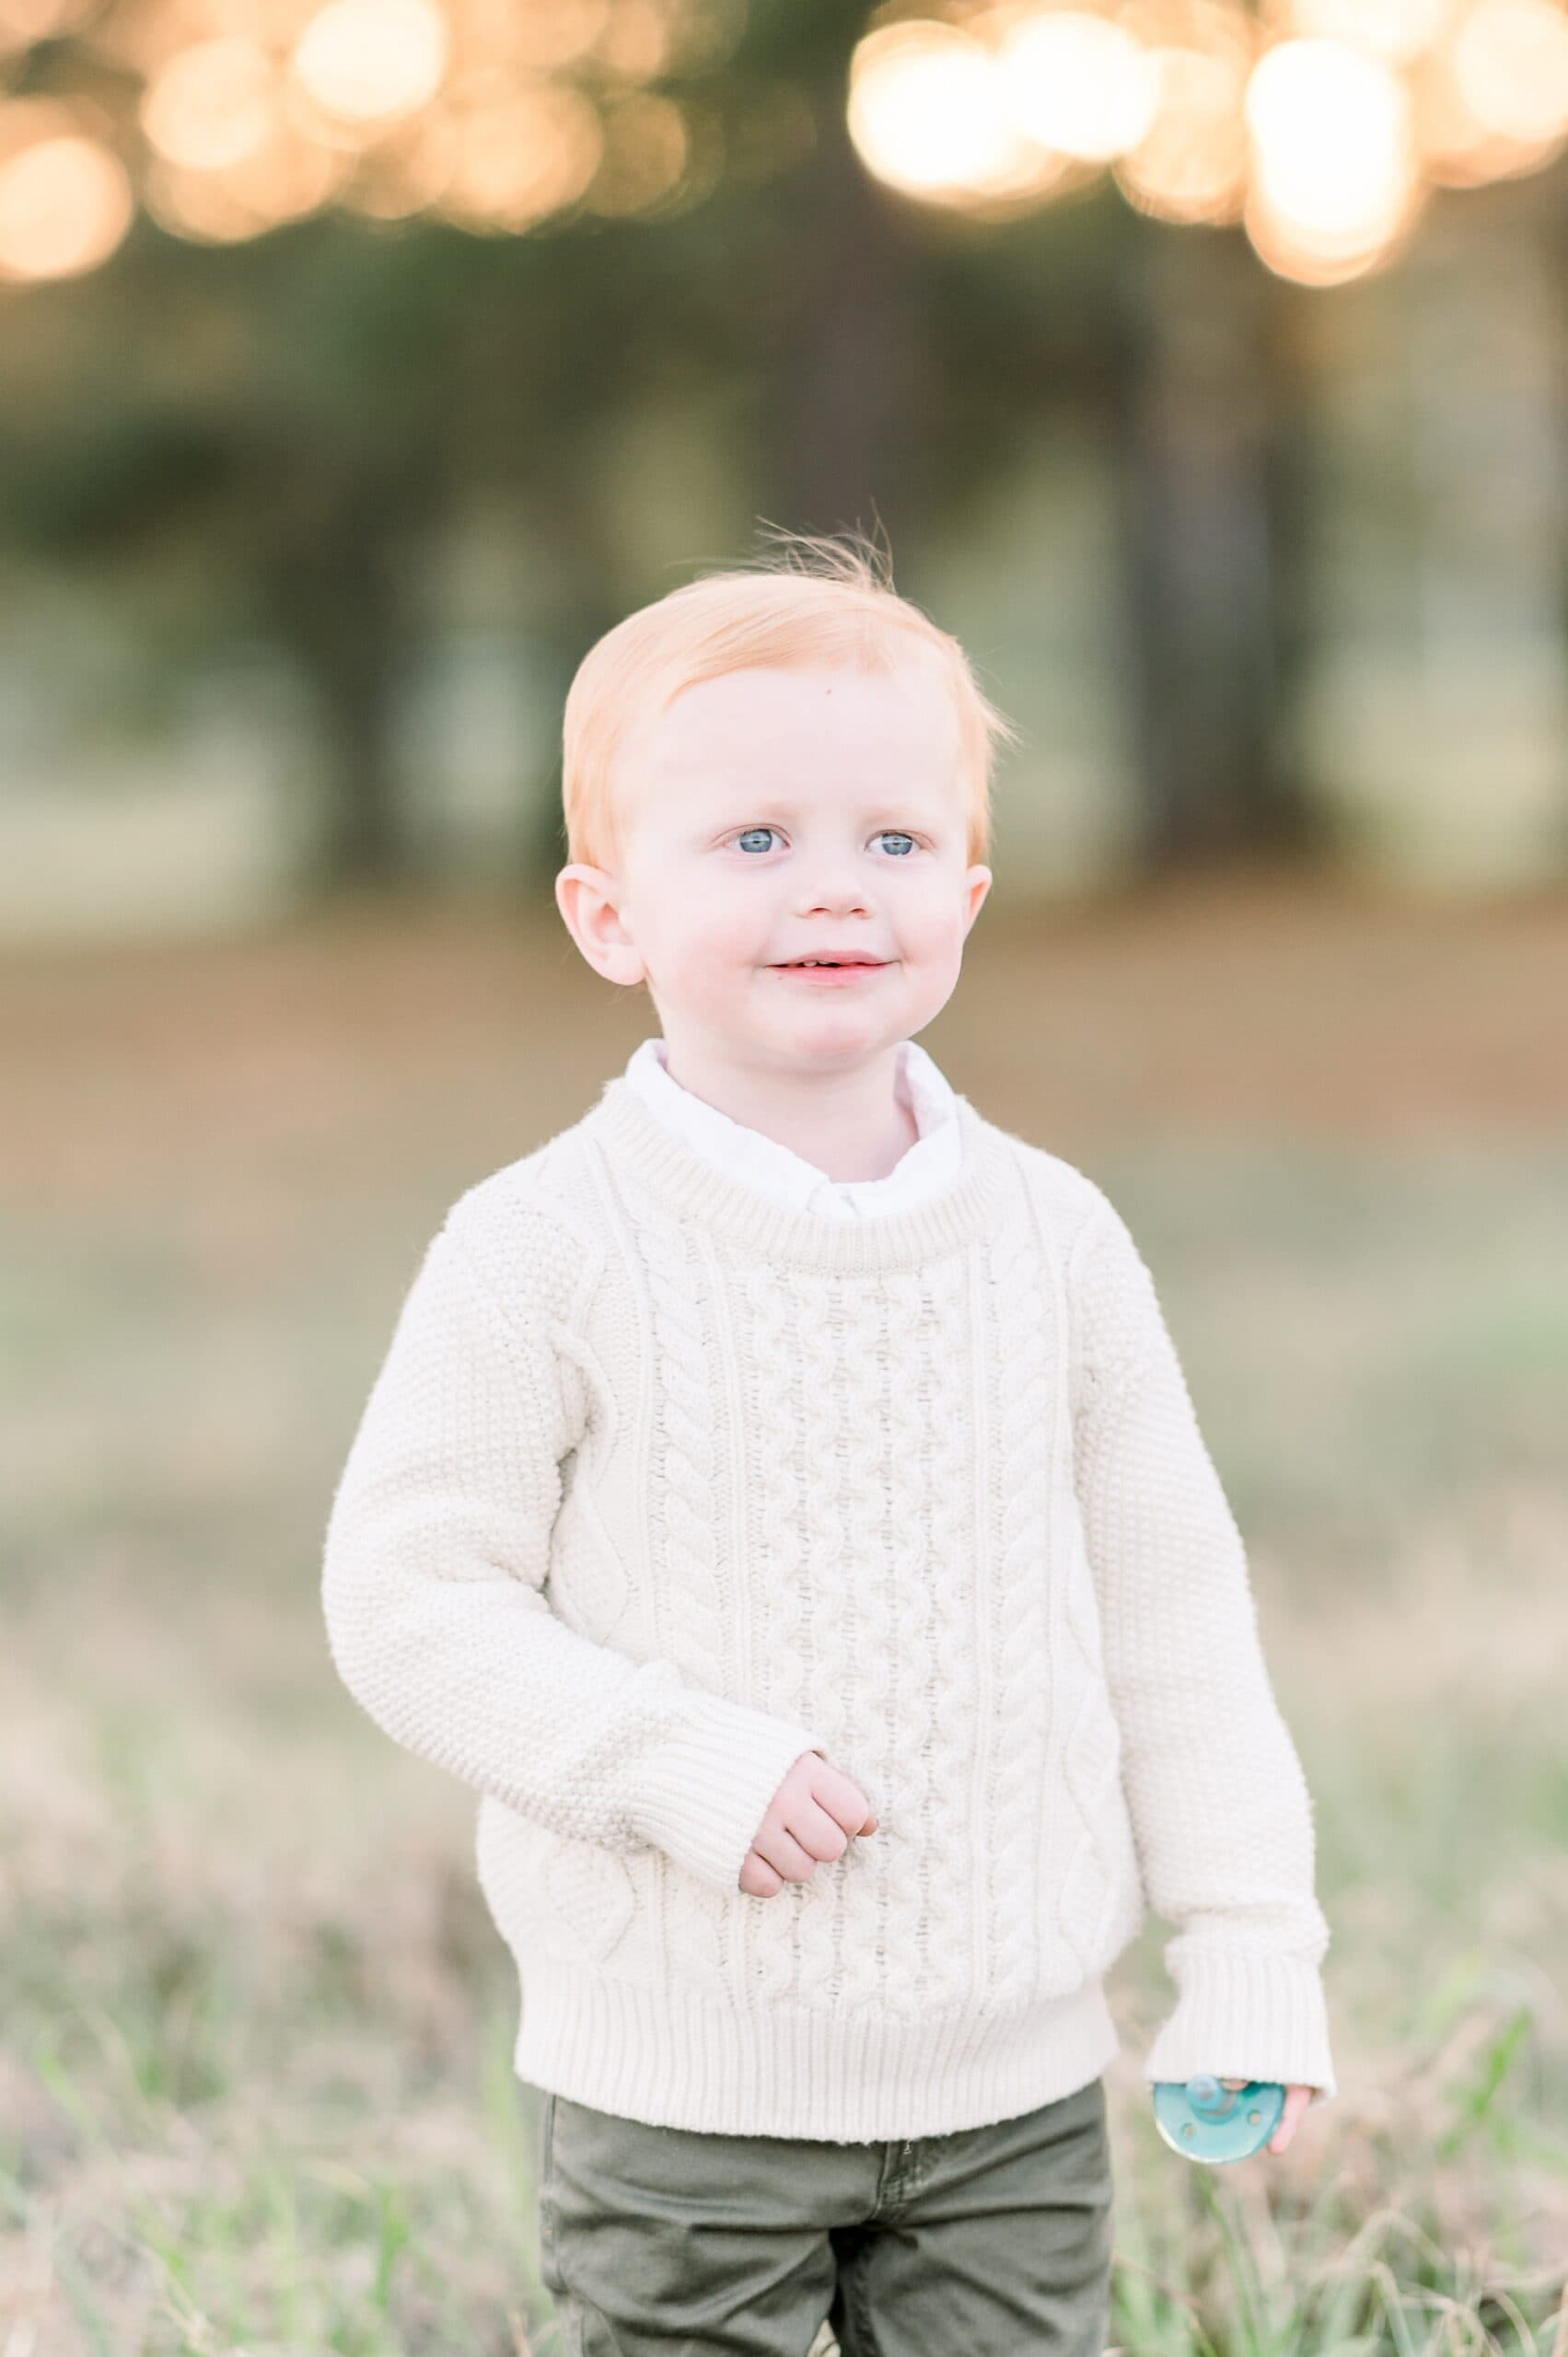 Toddler smiling at camera during photo session with Aimee Hamilton Photography.